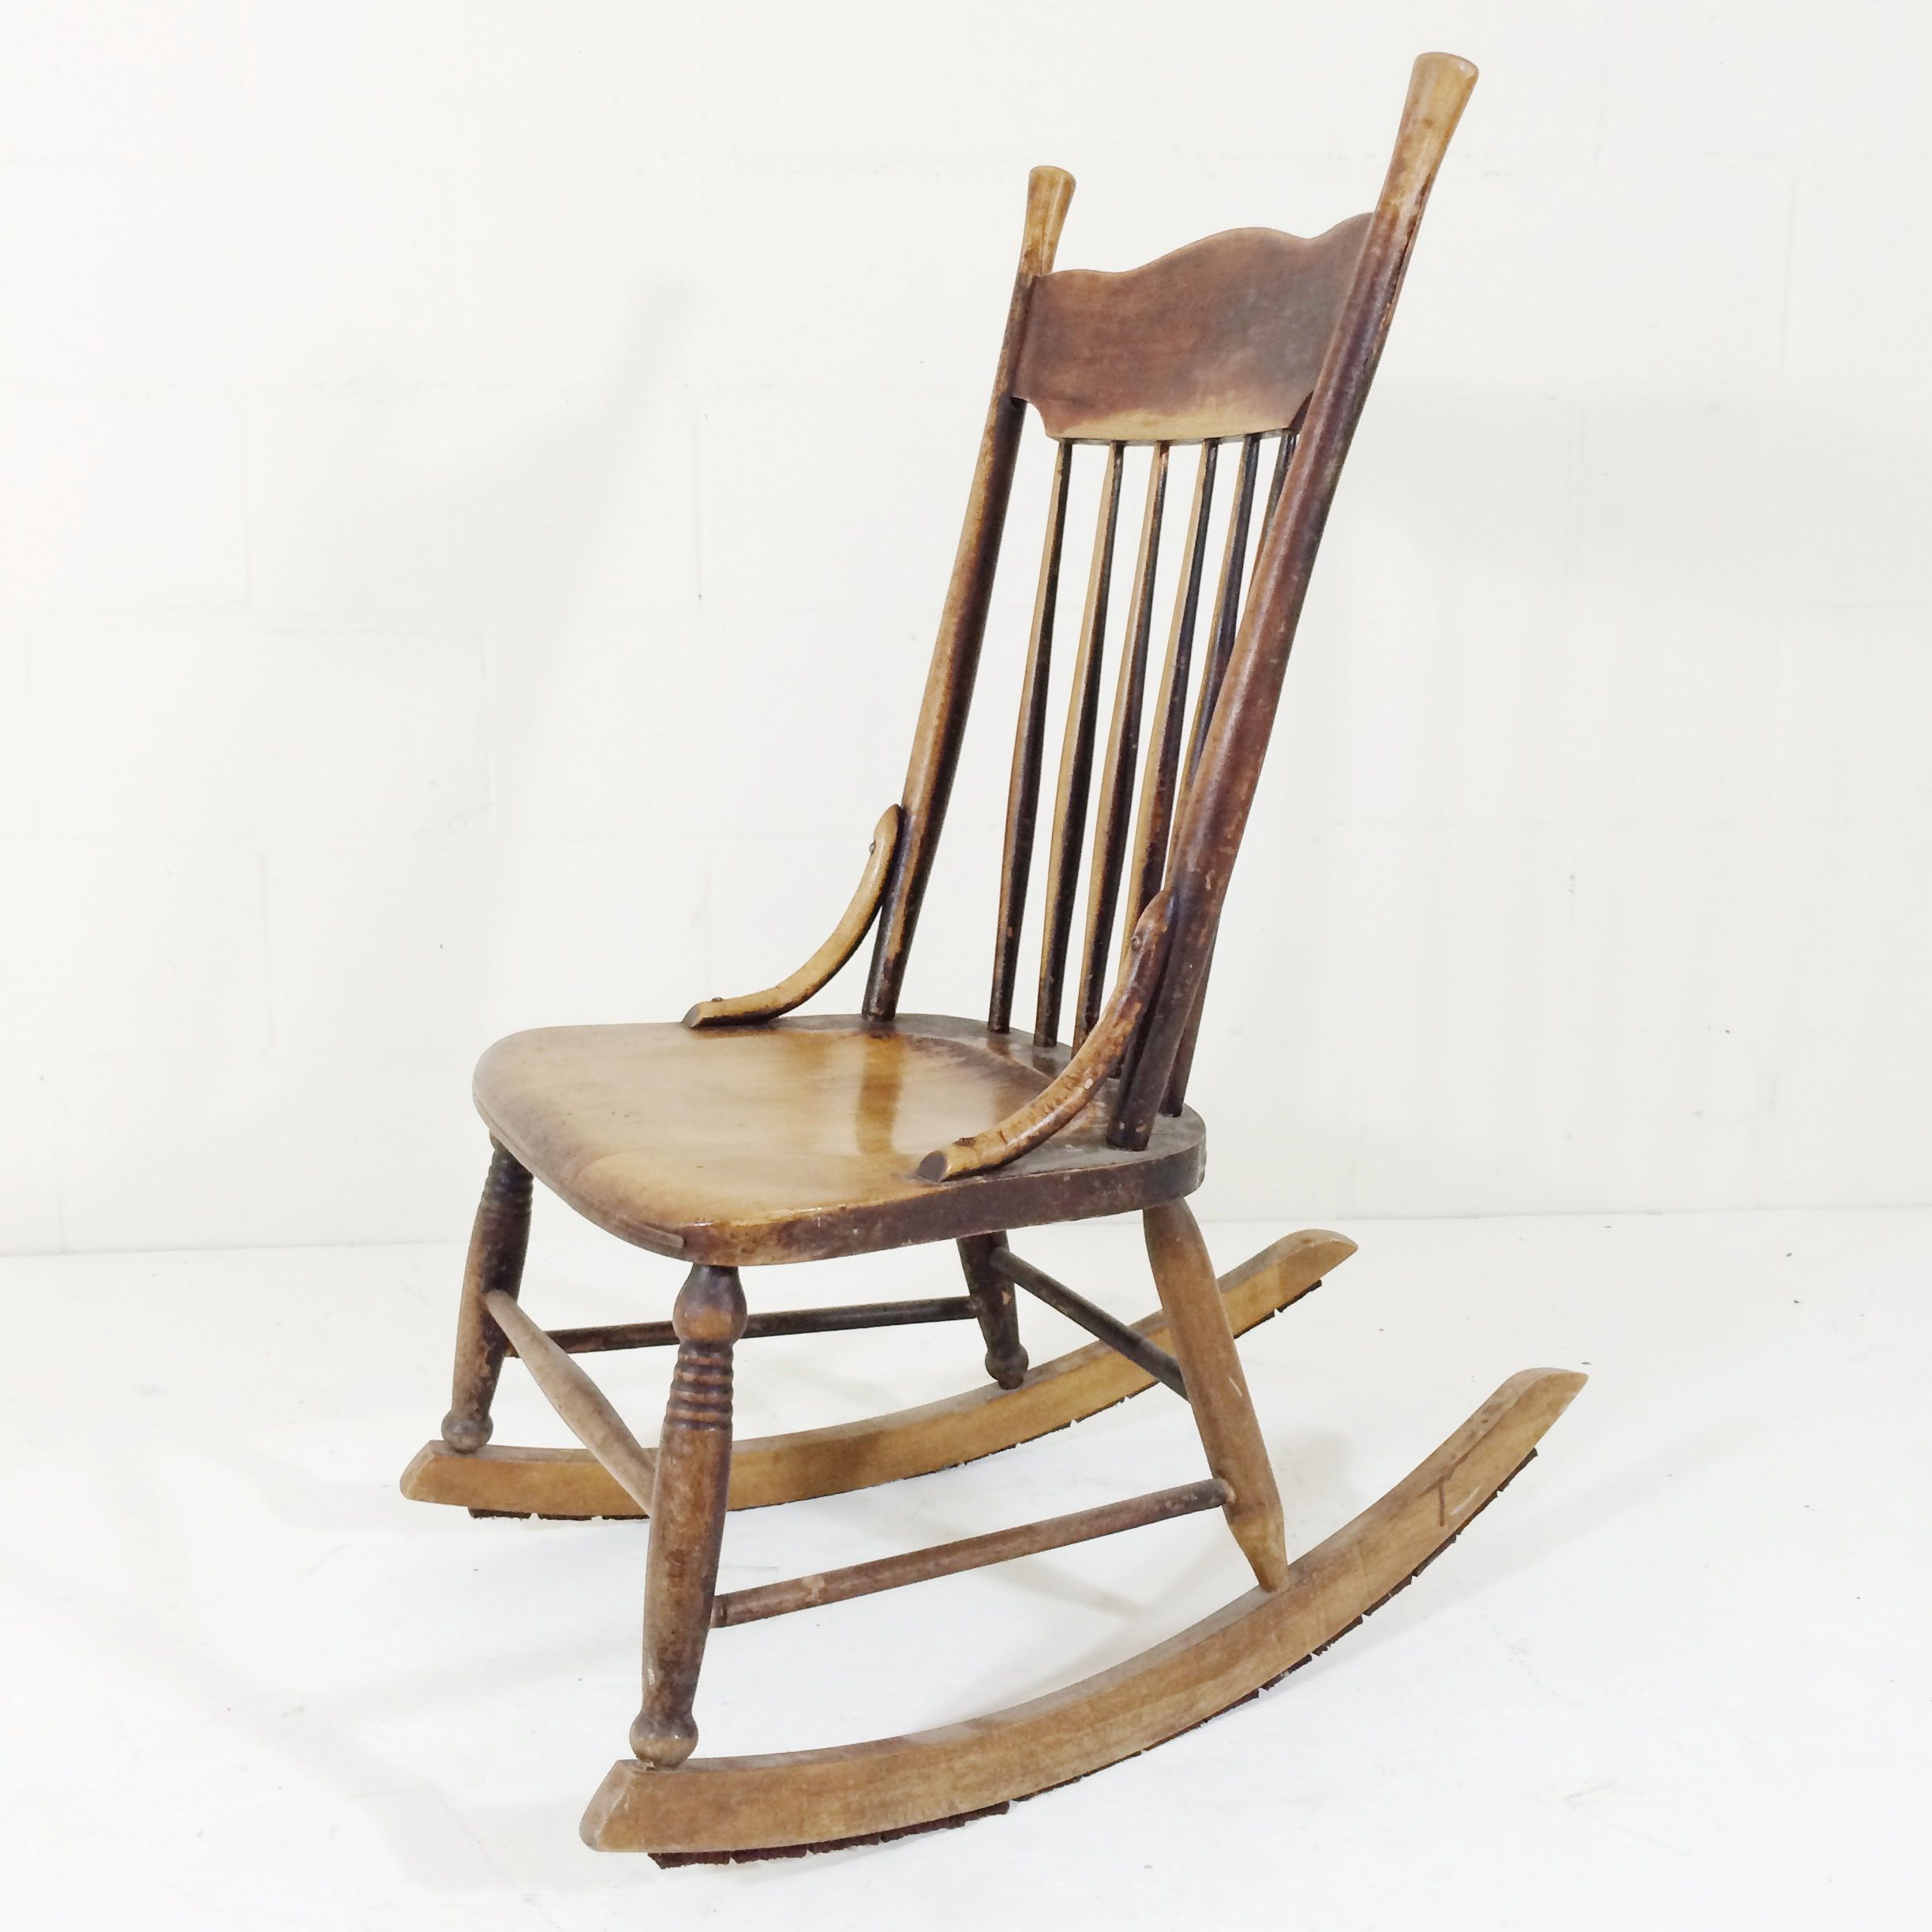 This Style Is Known As A Nursing Rocker As It Sits Low To The Ground And  Has No Arms. The Rocker Is In Great Condition, Very Comfortable ...